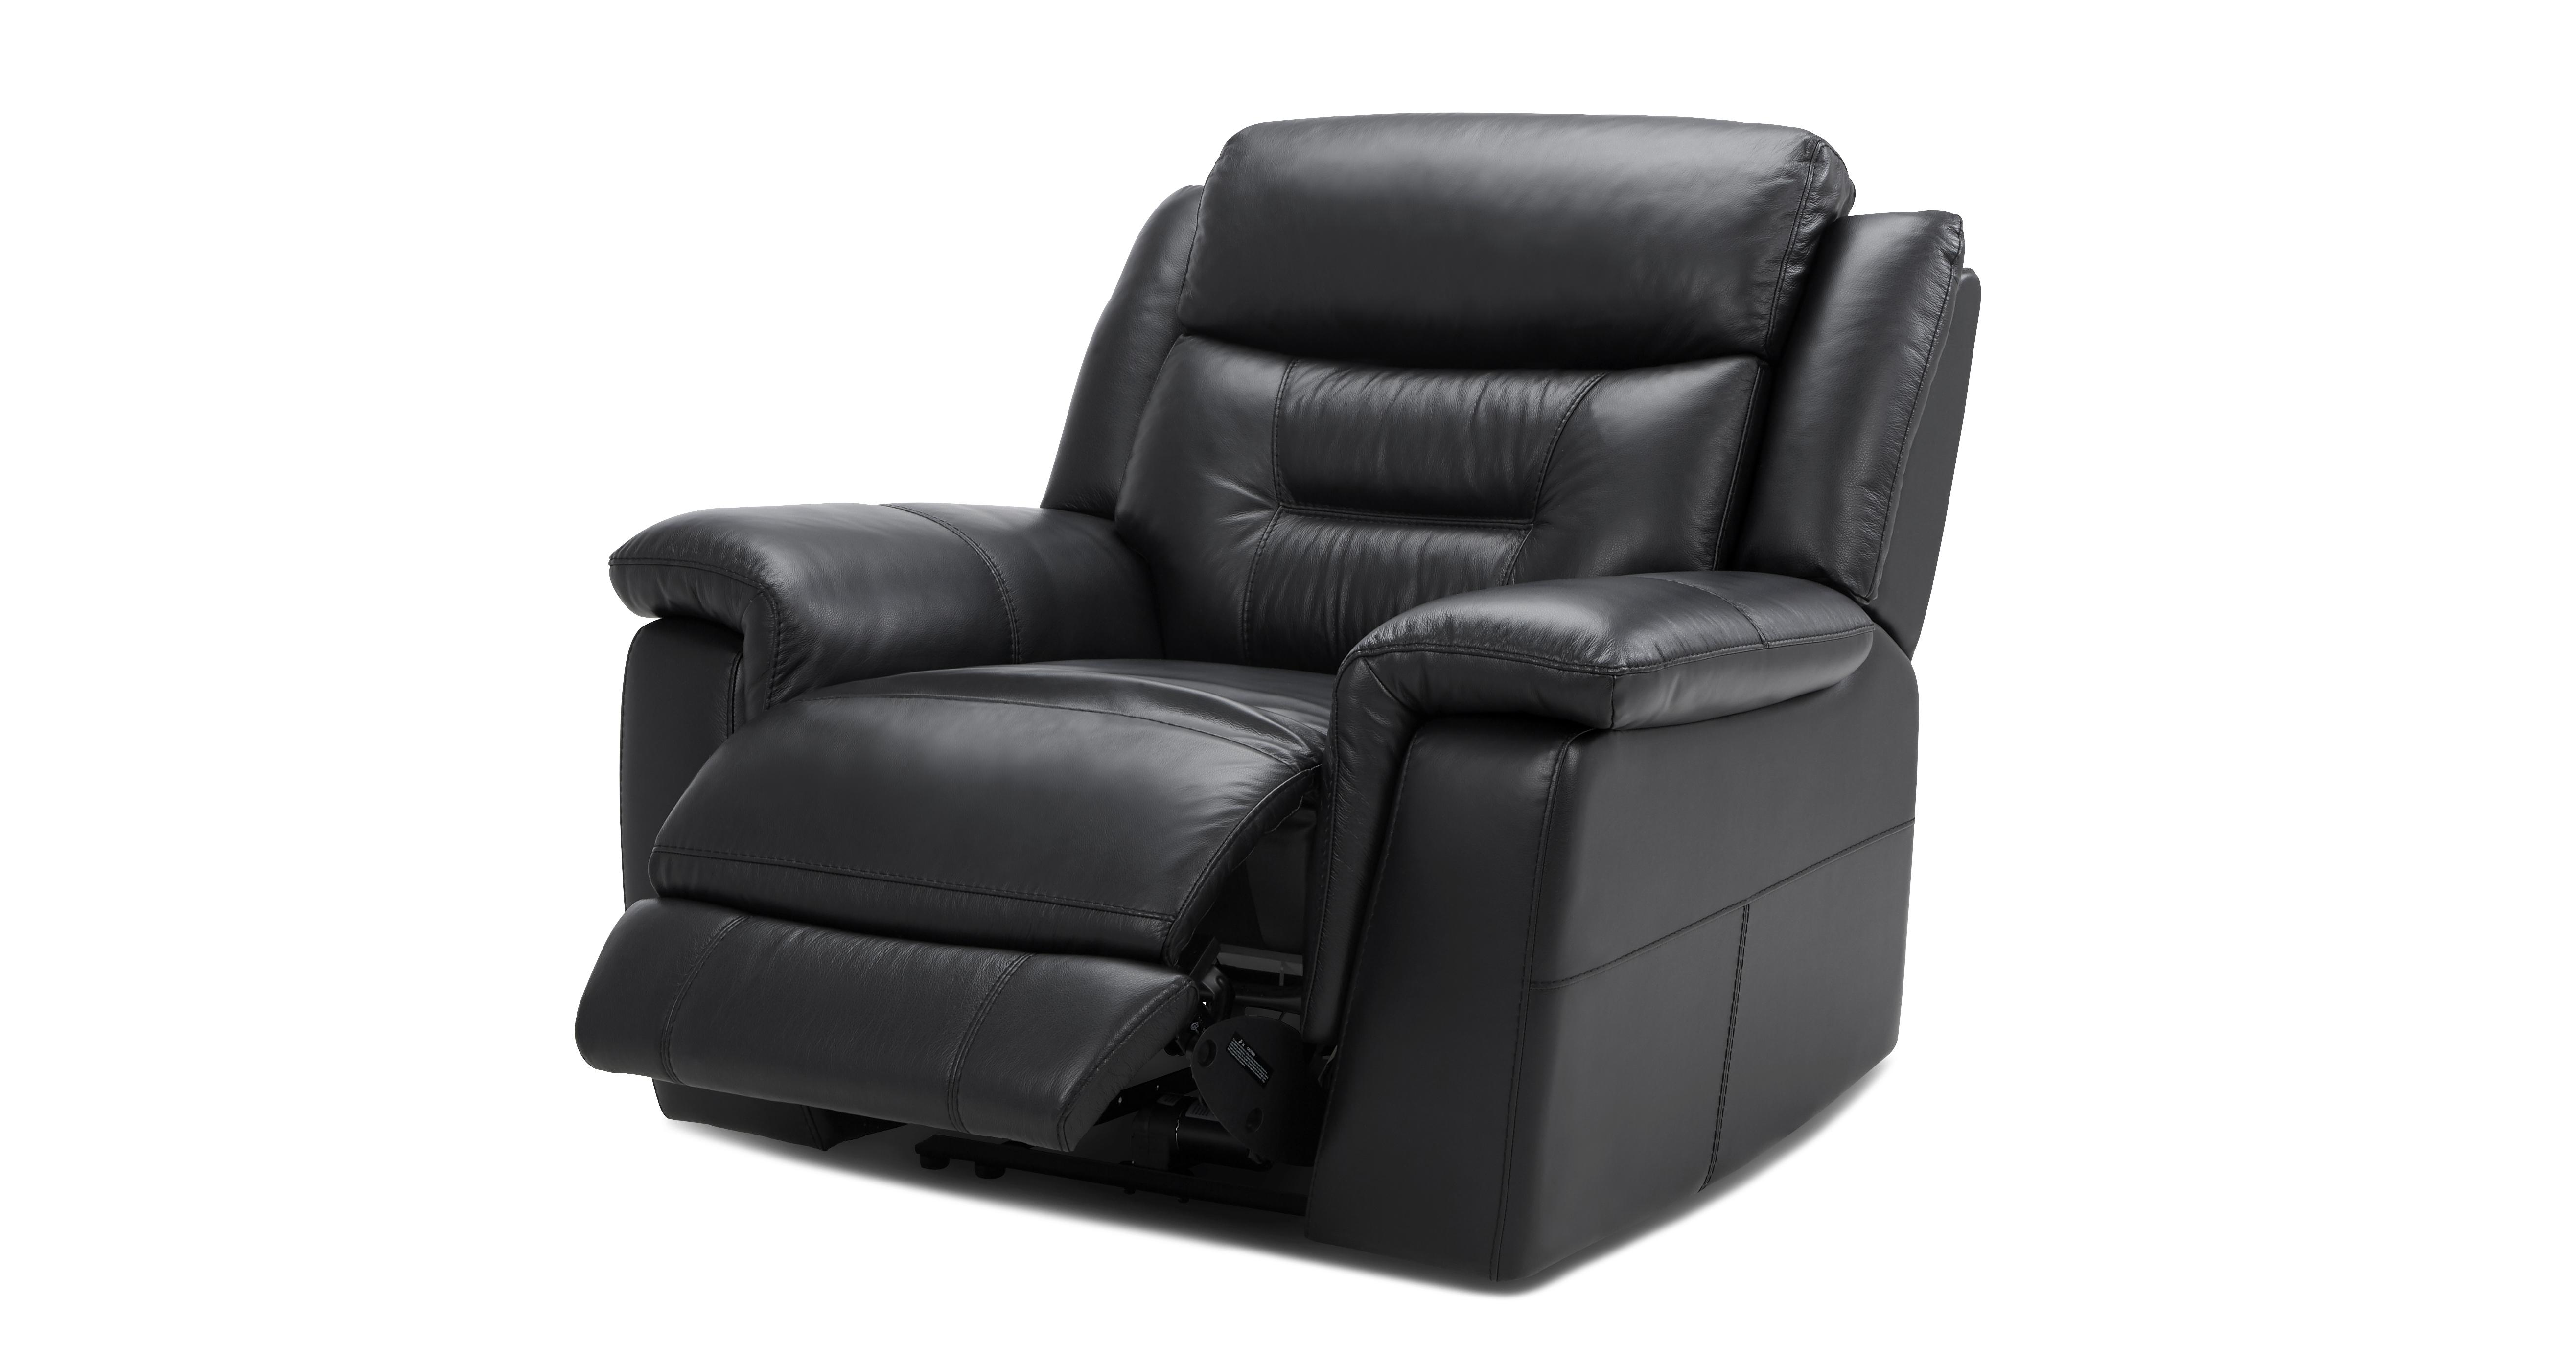 About The Winston Power Plus Recliner Chair